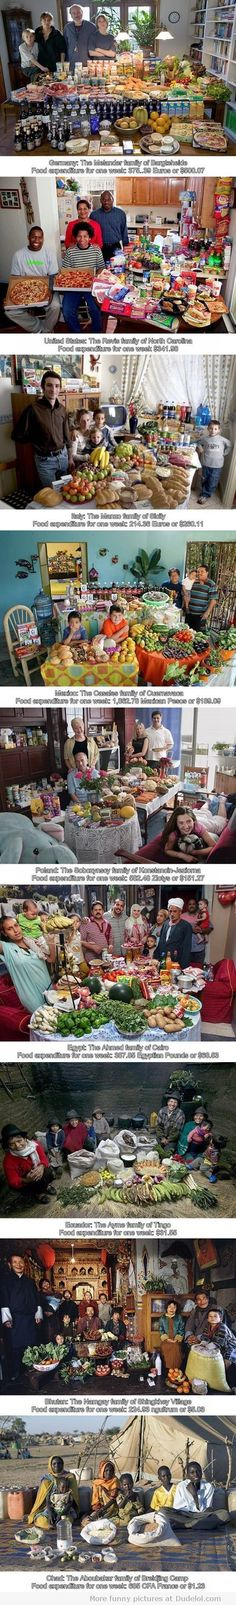 food consumption by families in different countries